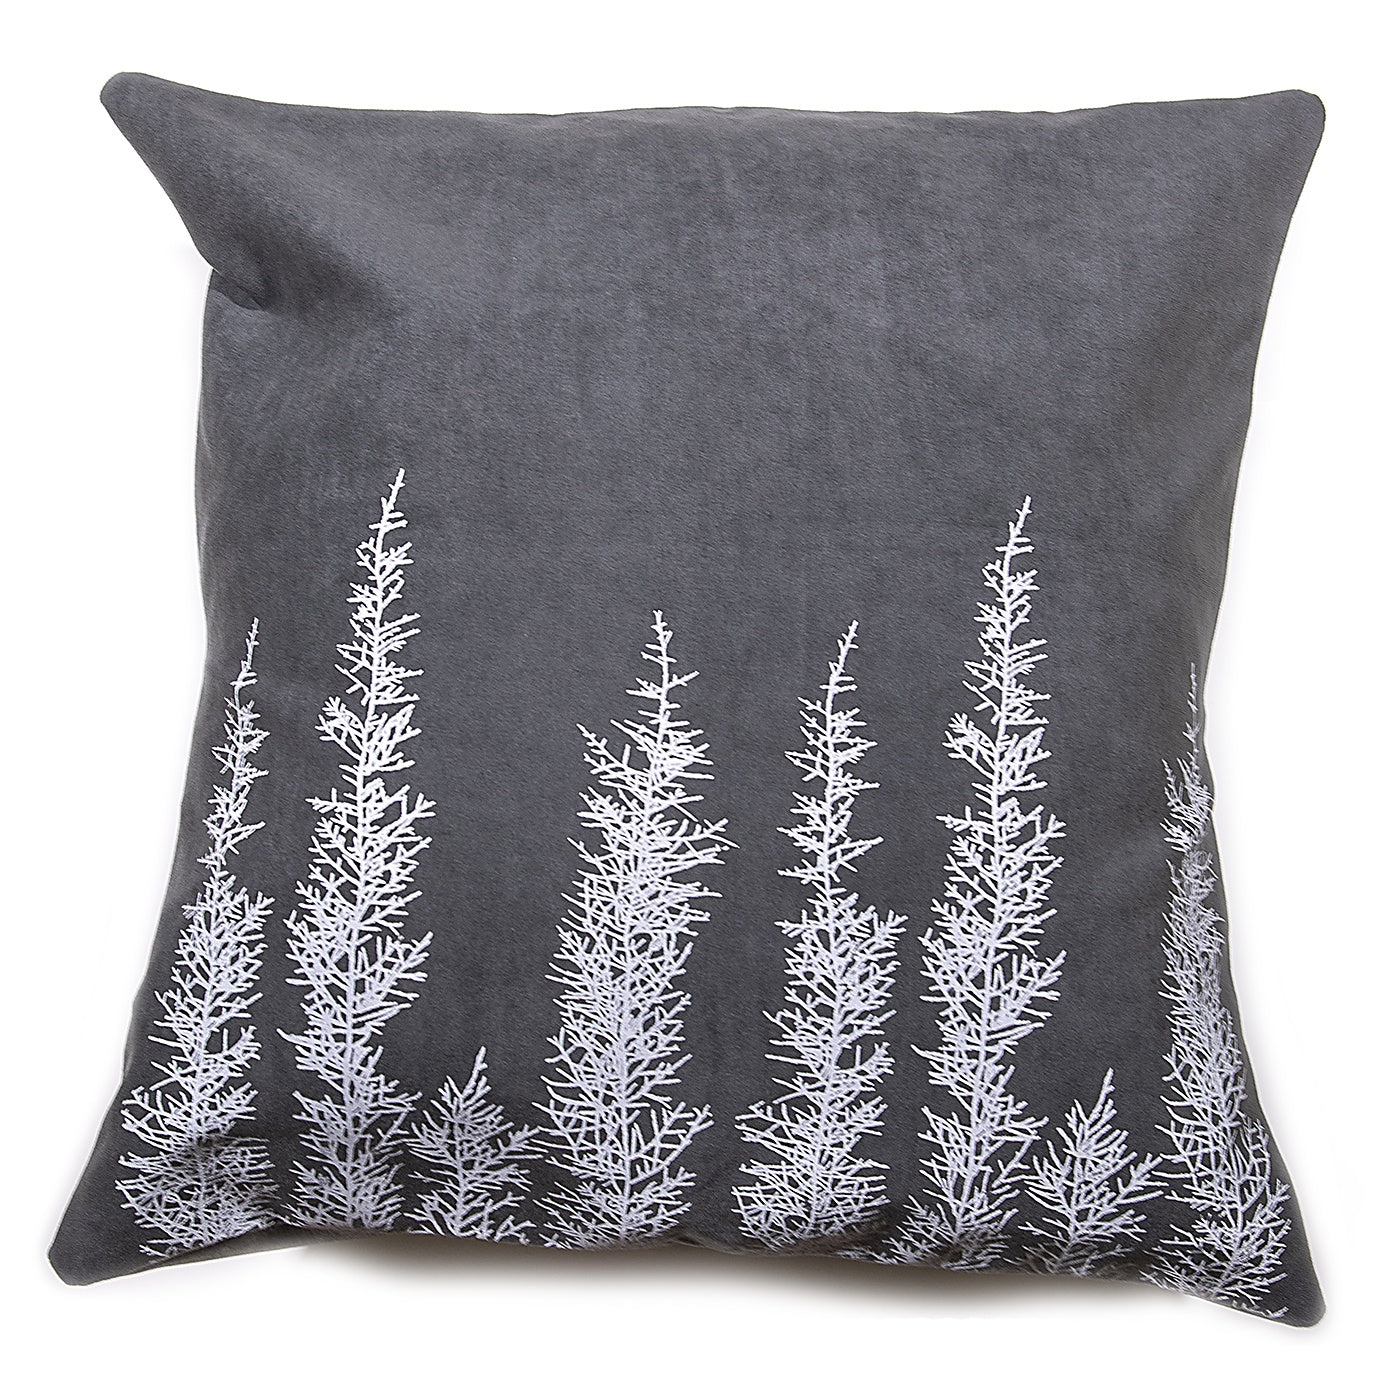 Stalley Textile Co. - Cushion Cover - Huon Pine - White on Charcoal